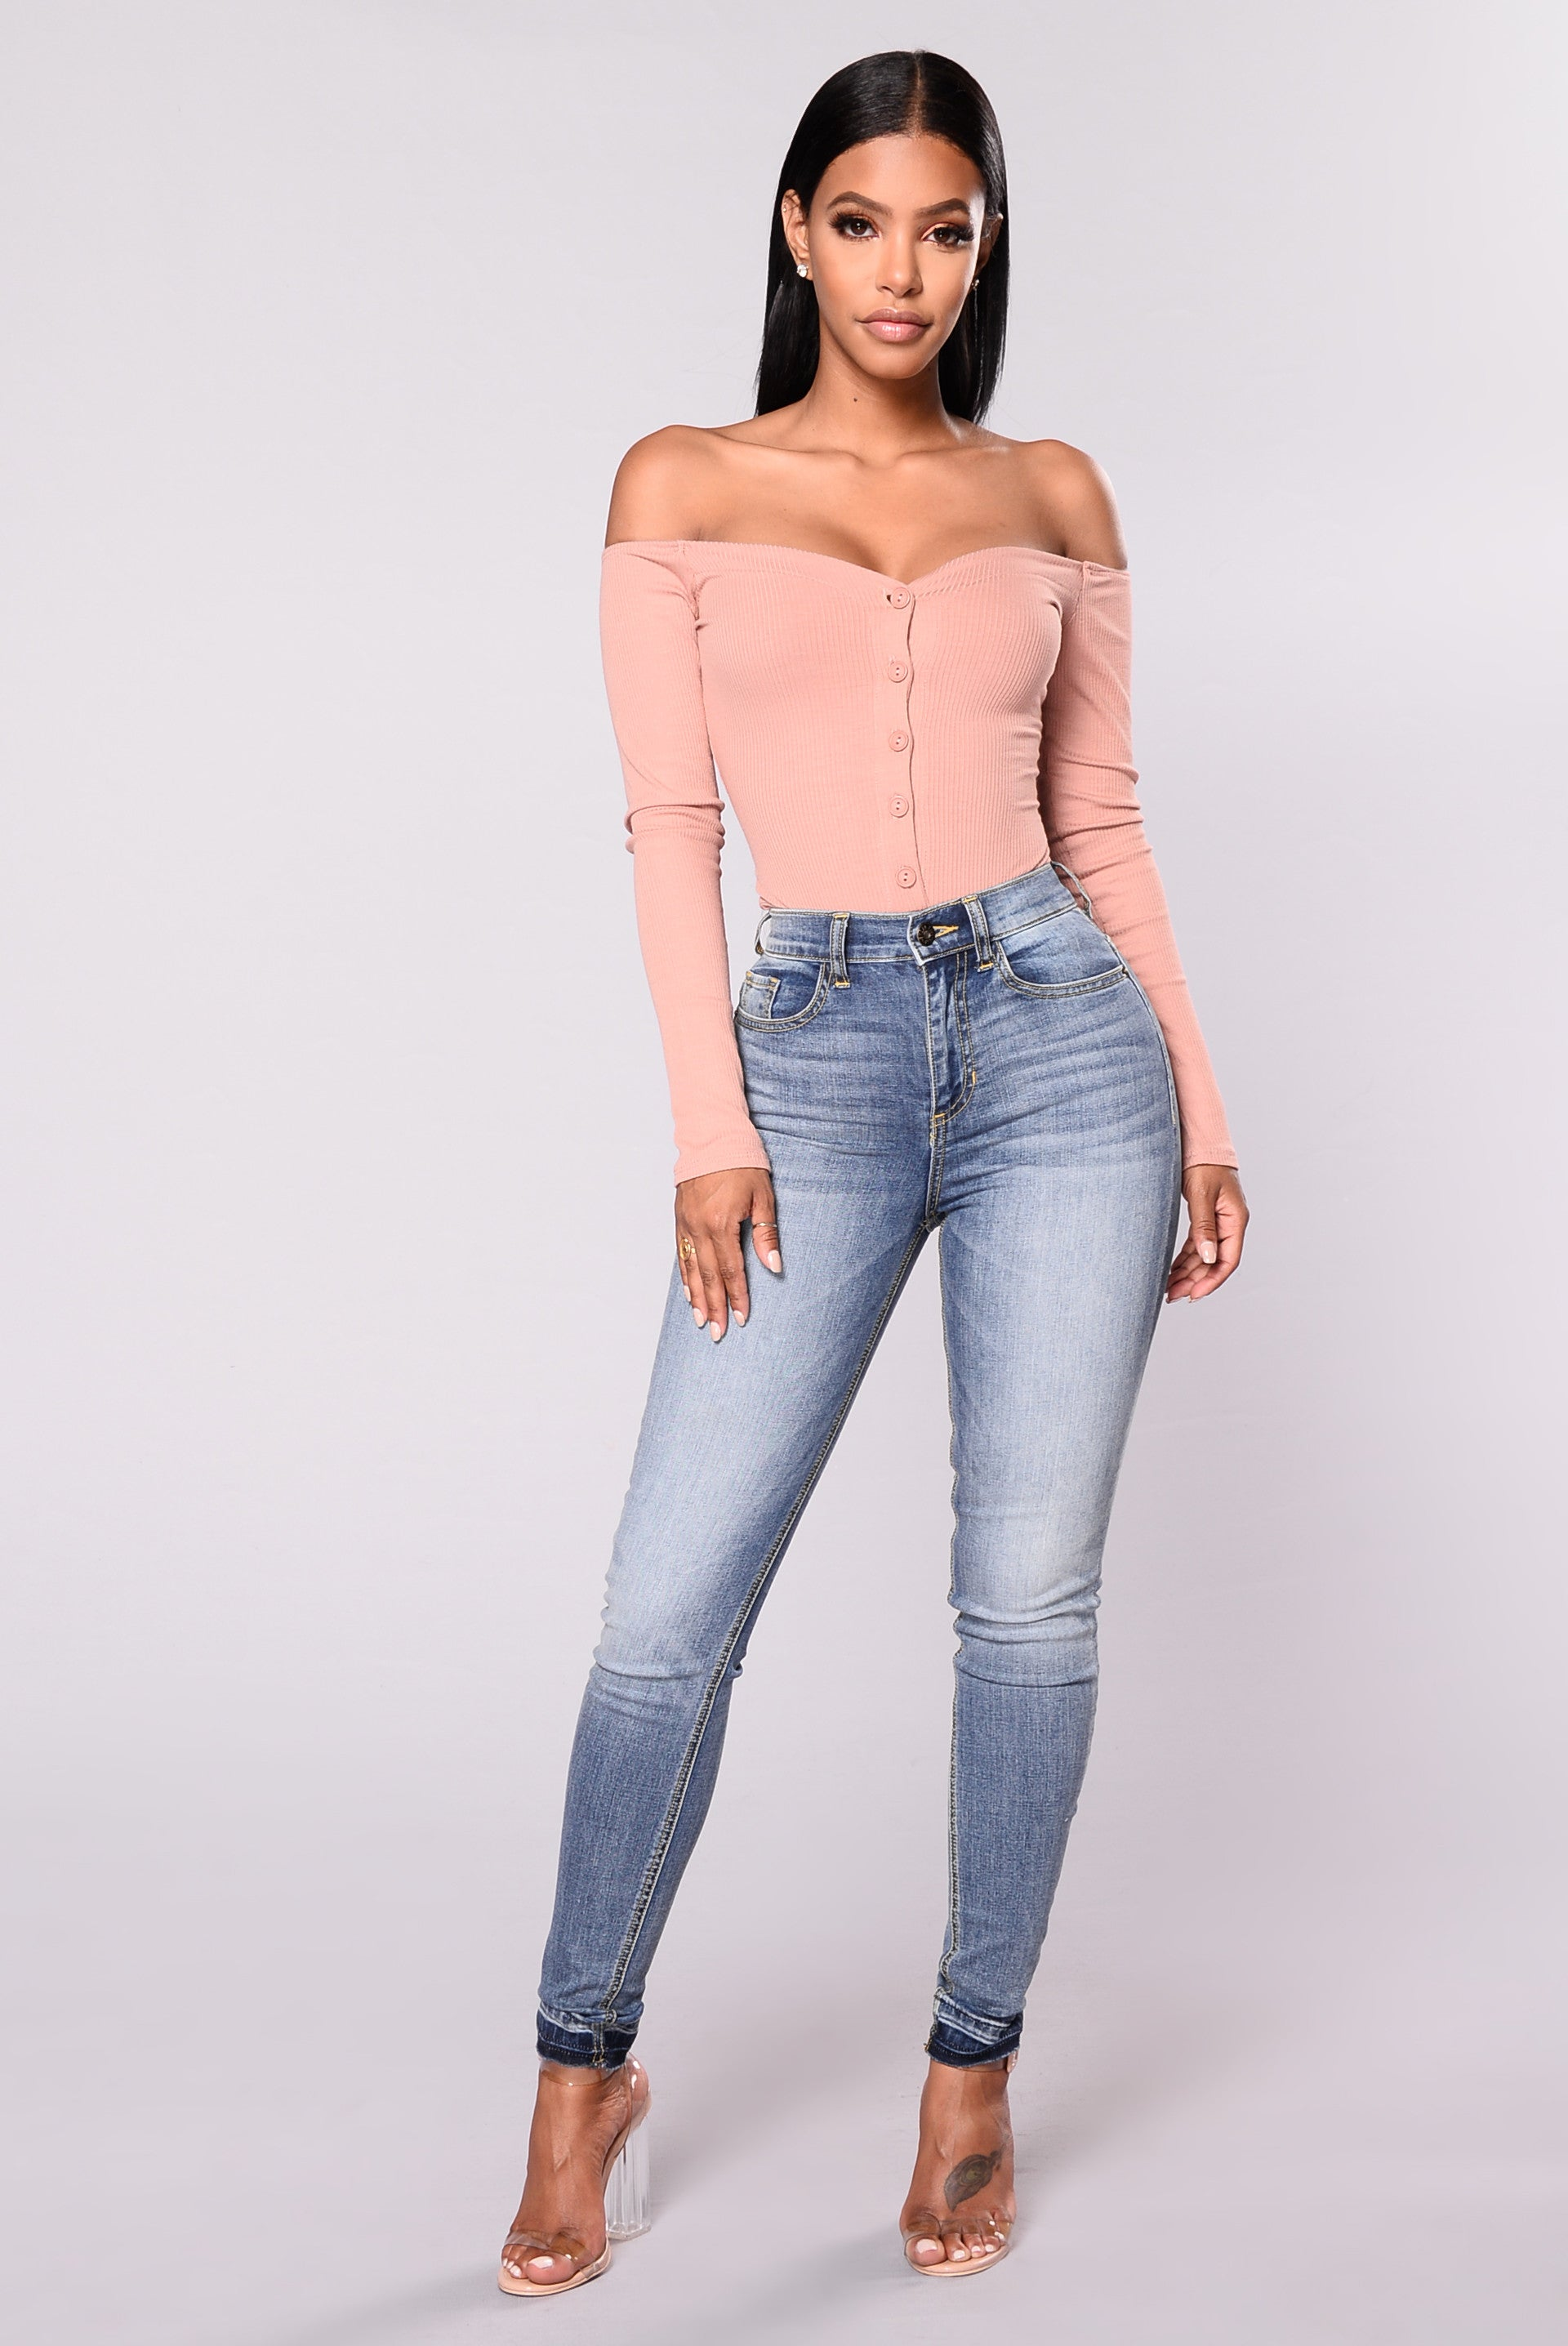 Fool In Love Off Shoulder Bodysuit